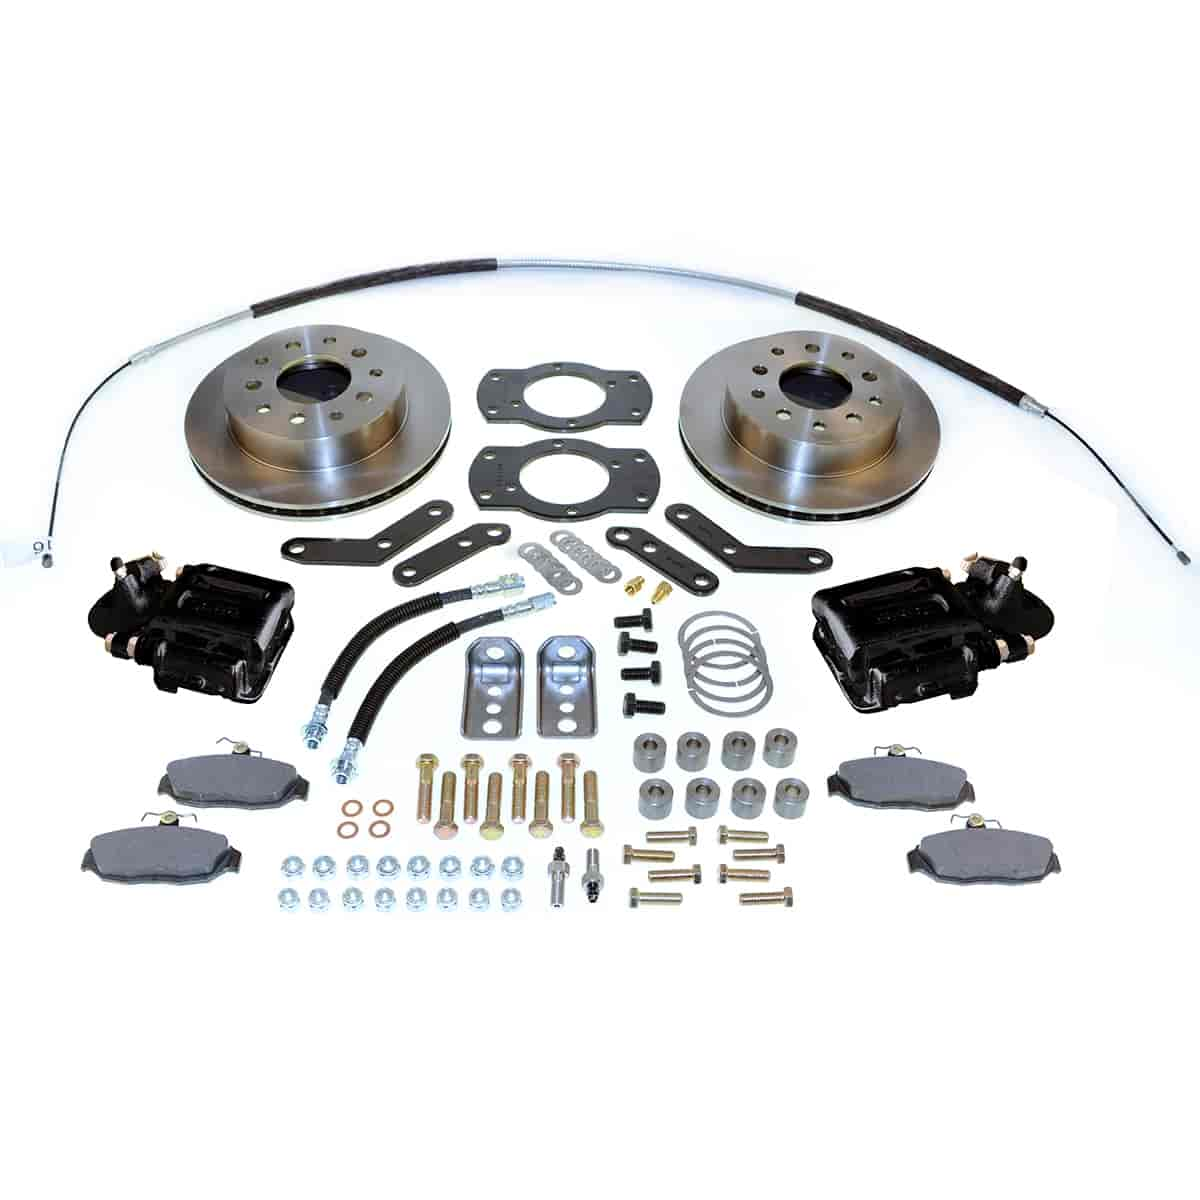 SSBC A125-1BK - Stainless Steel Brakes Single Piston Rear Disc Brake Conversion Kit